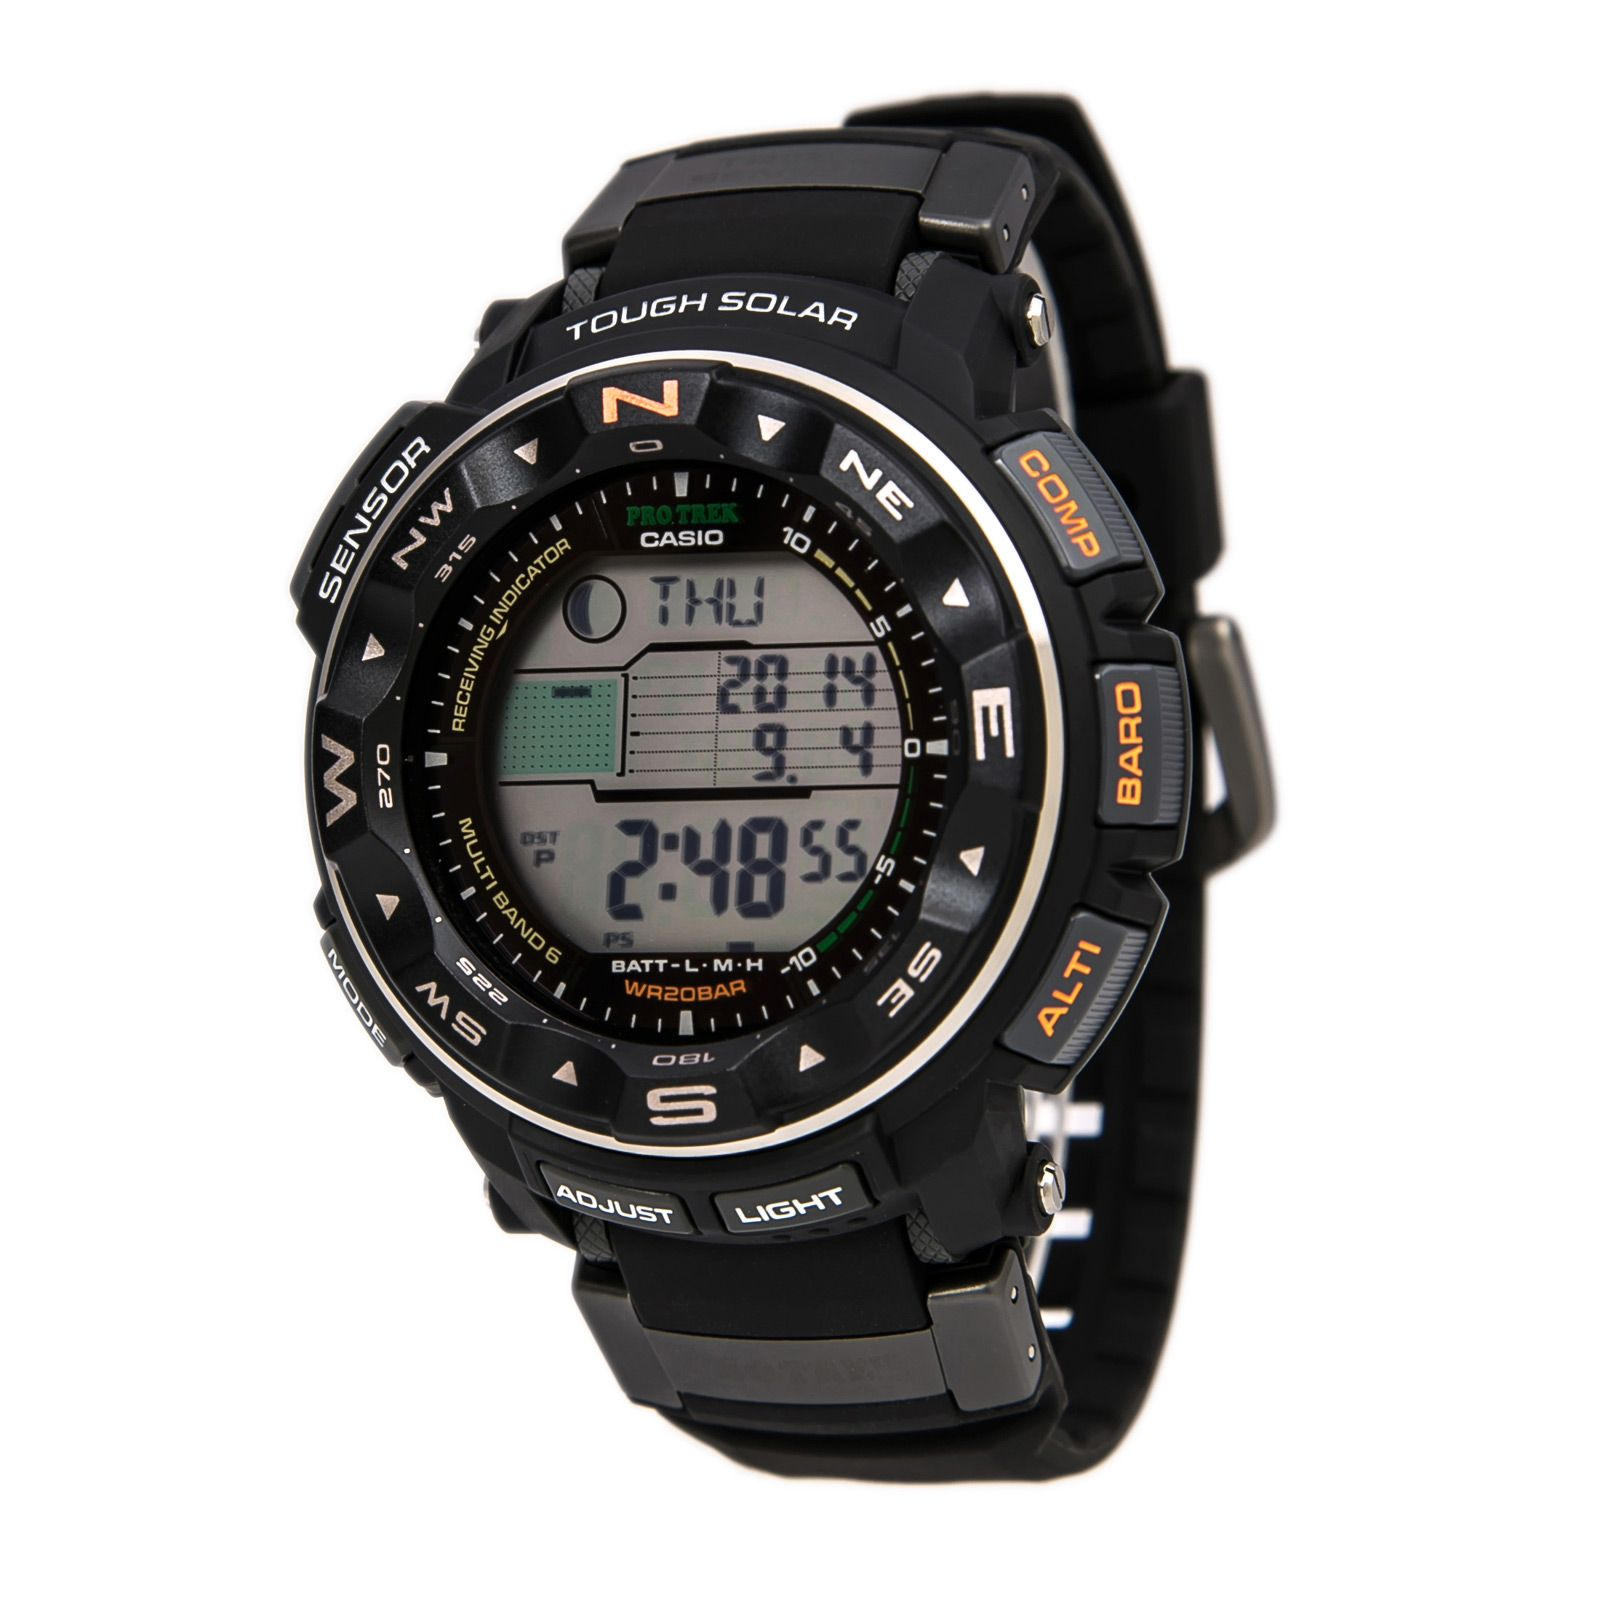 band amazon silicon satellite watches japan astron com glass power pin gps solar seiko sapphire